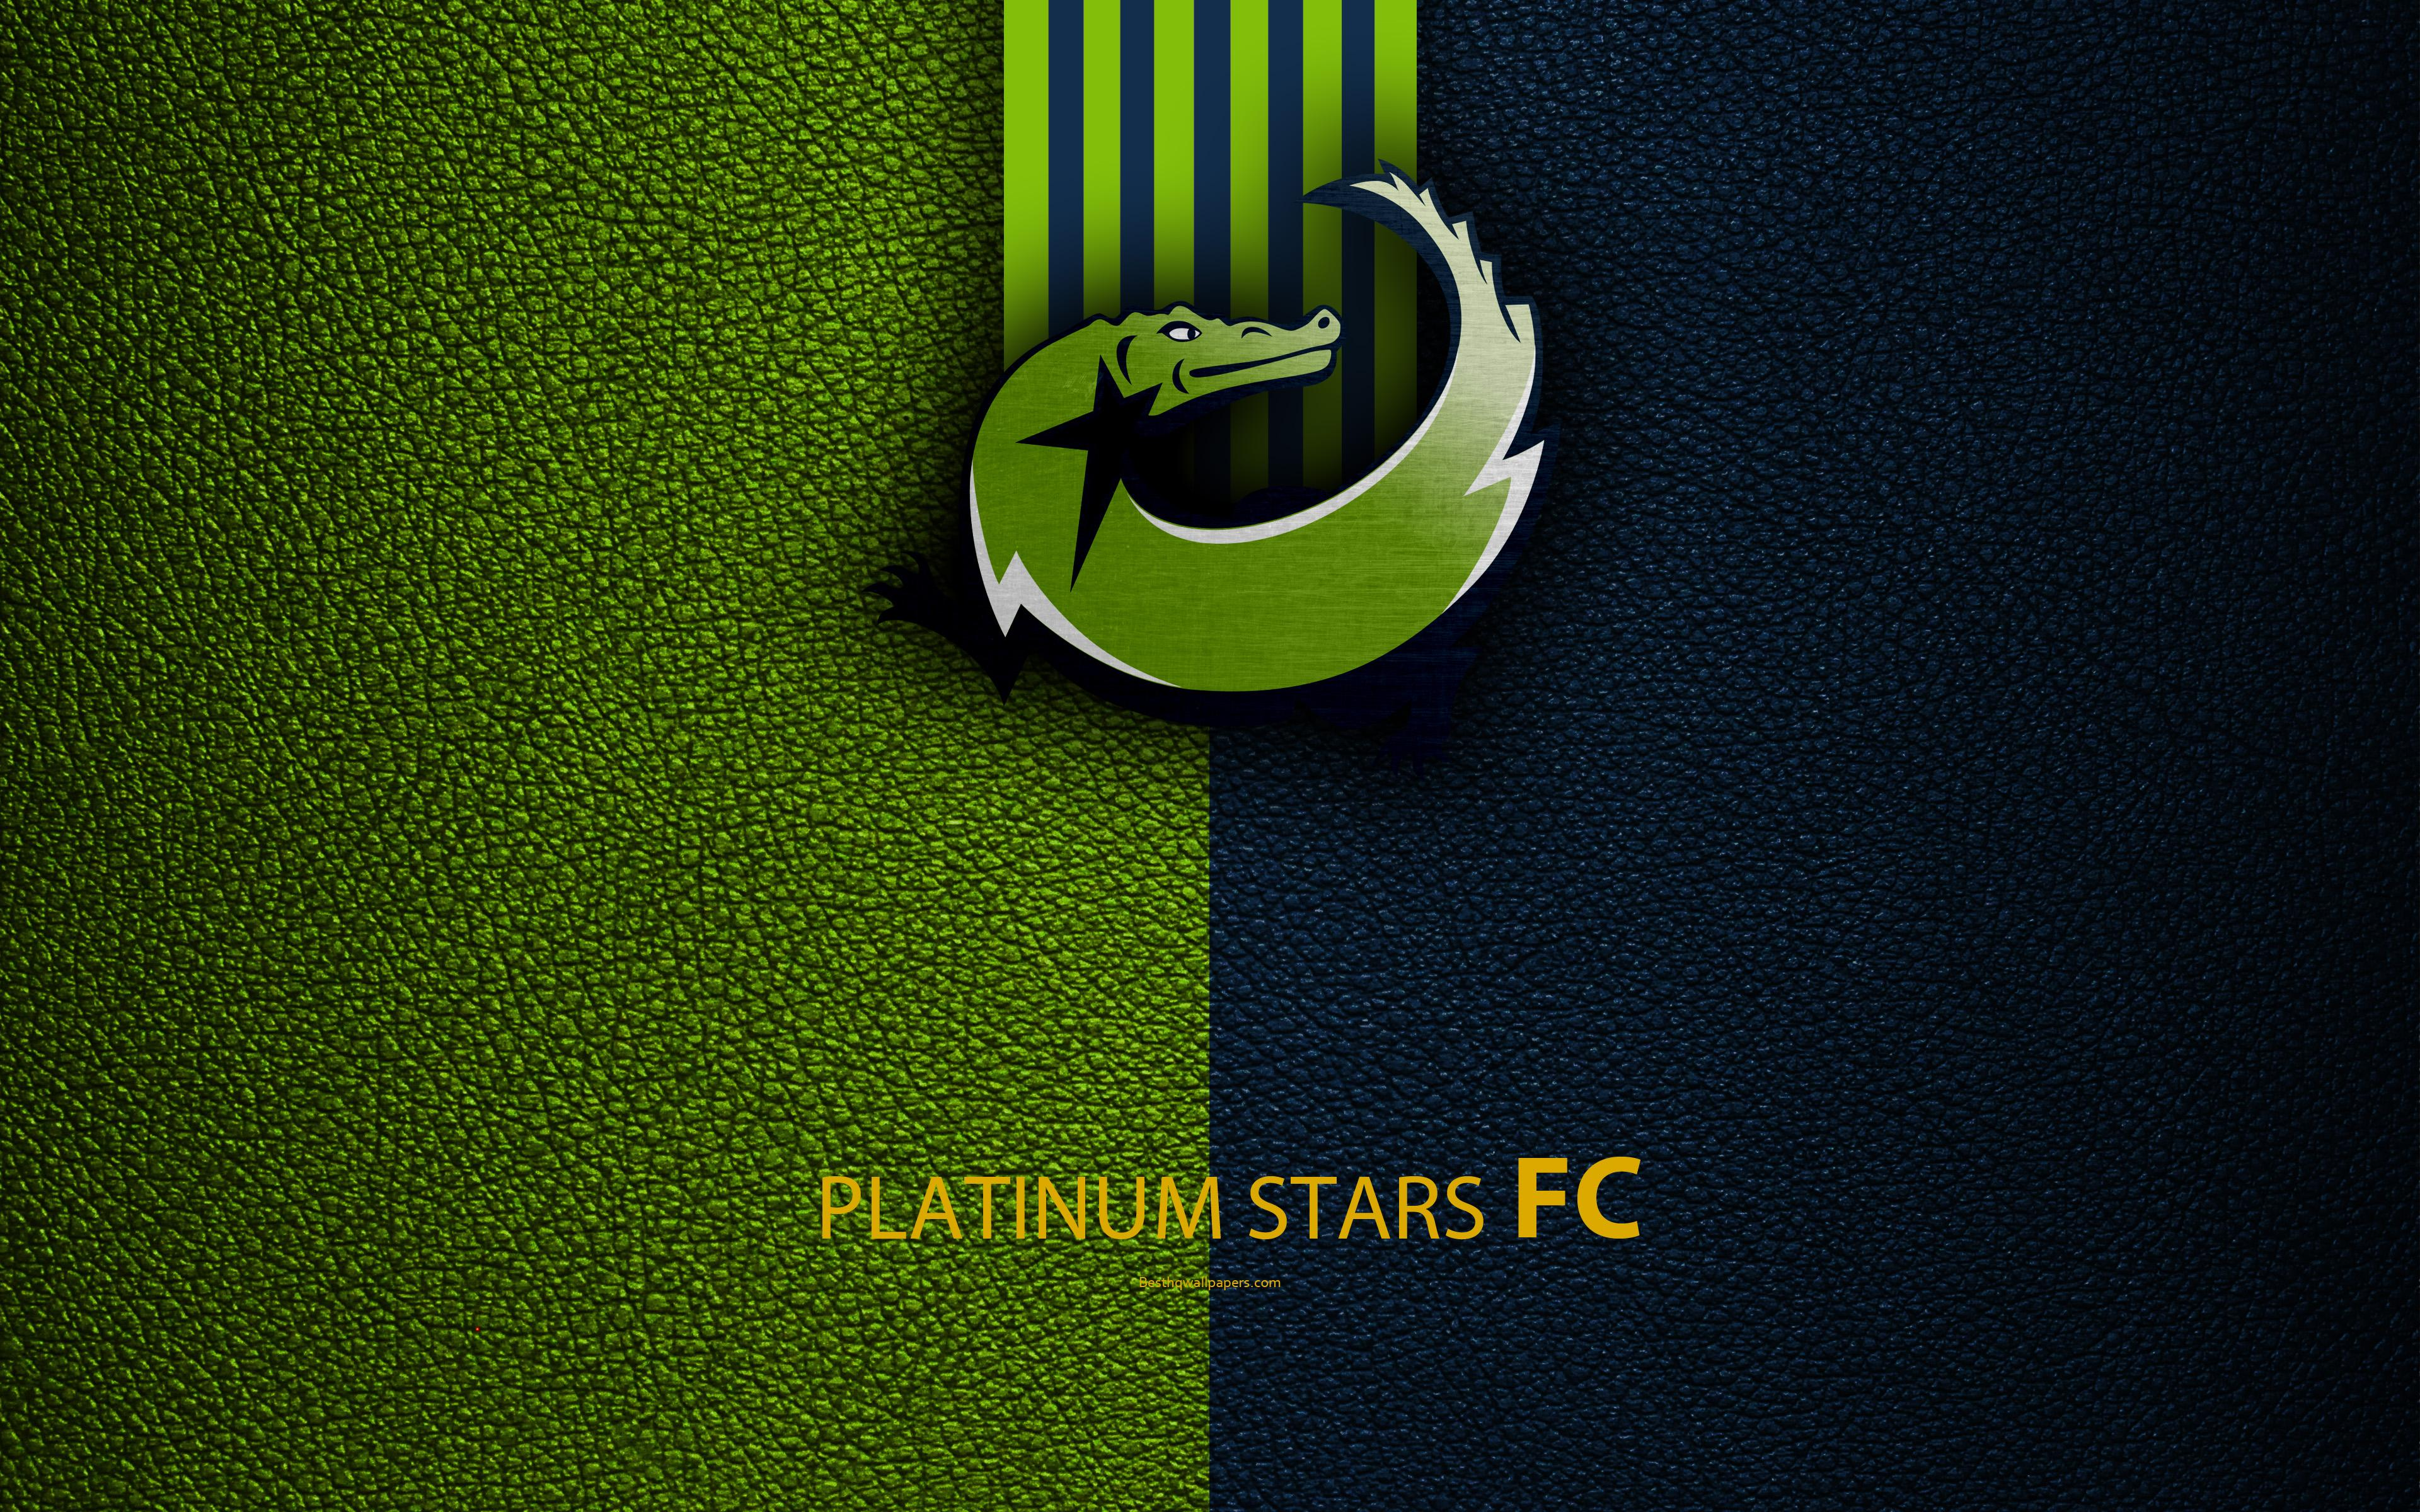 Download wallpapers Platinum Stars FC, 4k, leather texture, logo